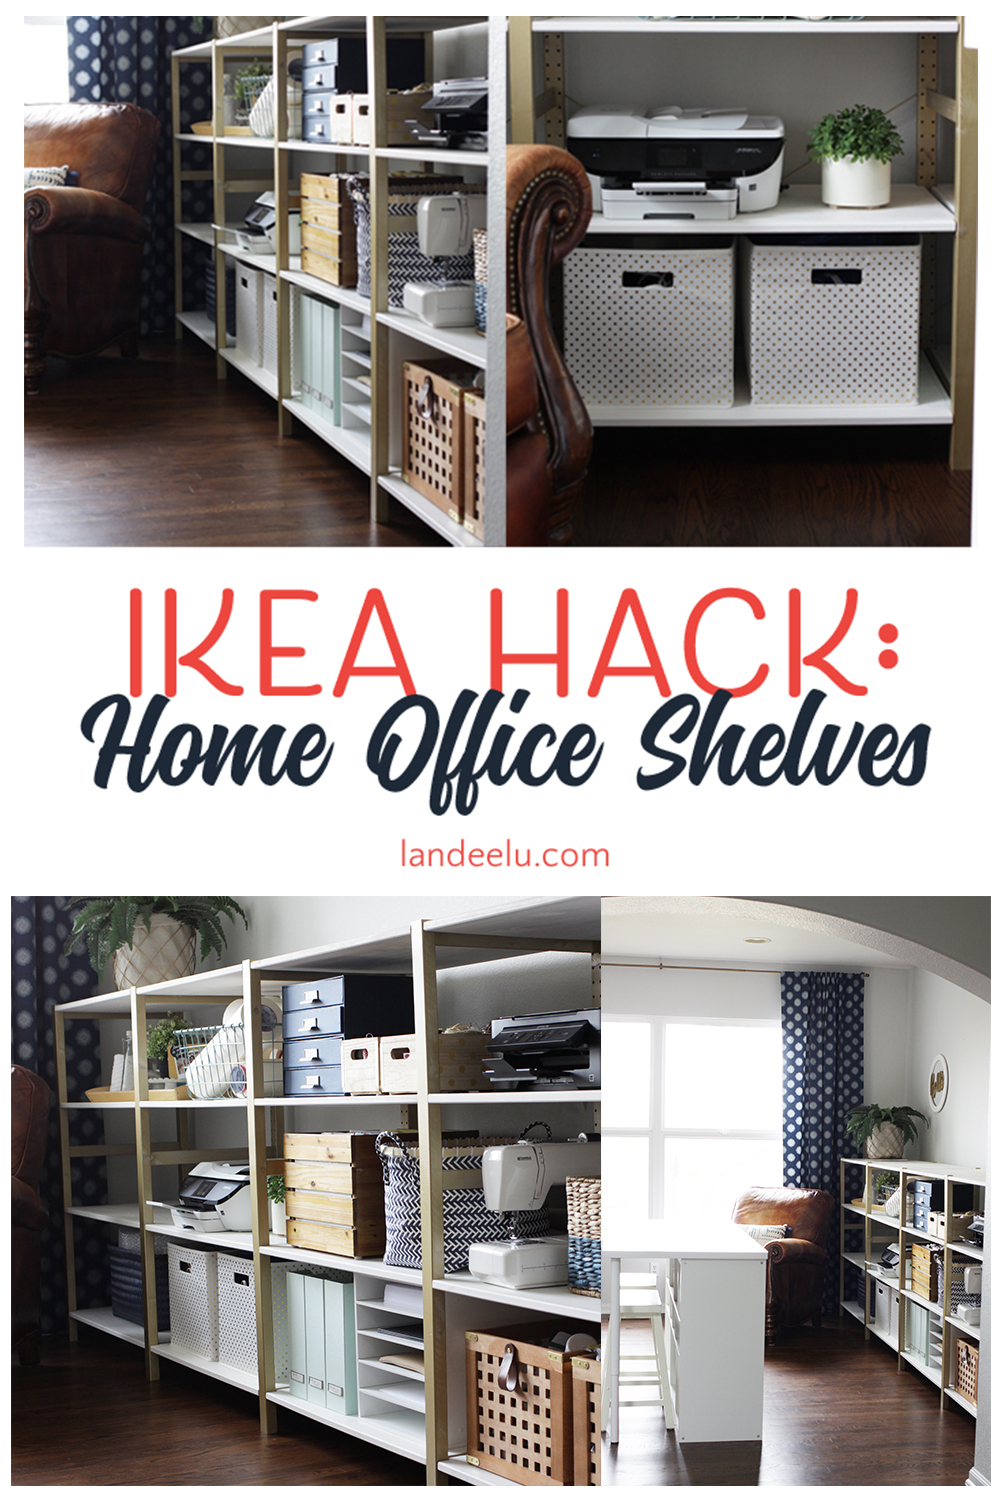 Over 11 linear feet of chic shelving made from super cheap IKEA storage shelves! This is an awesome IKEA hack. #ikeahack #easyshelving #officeshelves #storageshelves